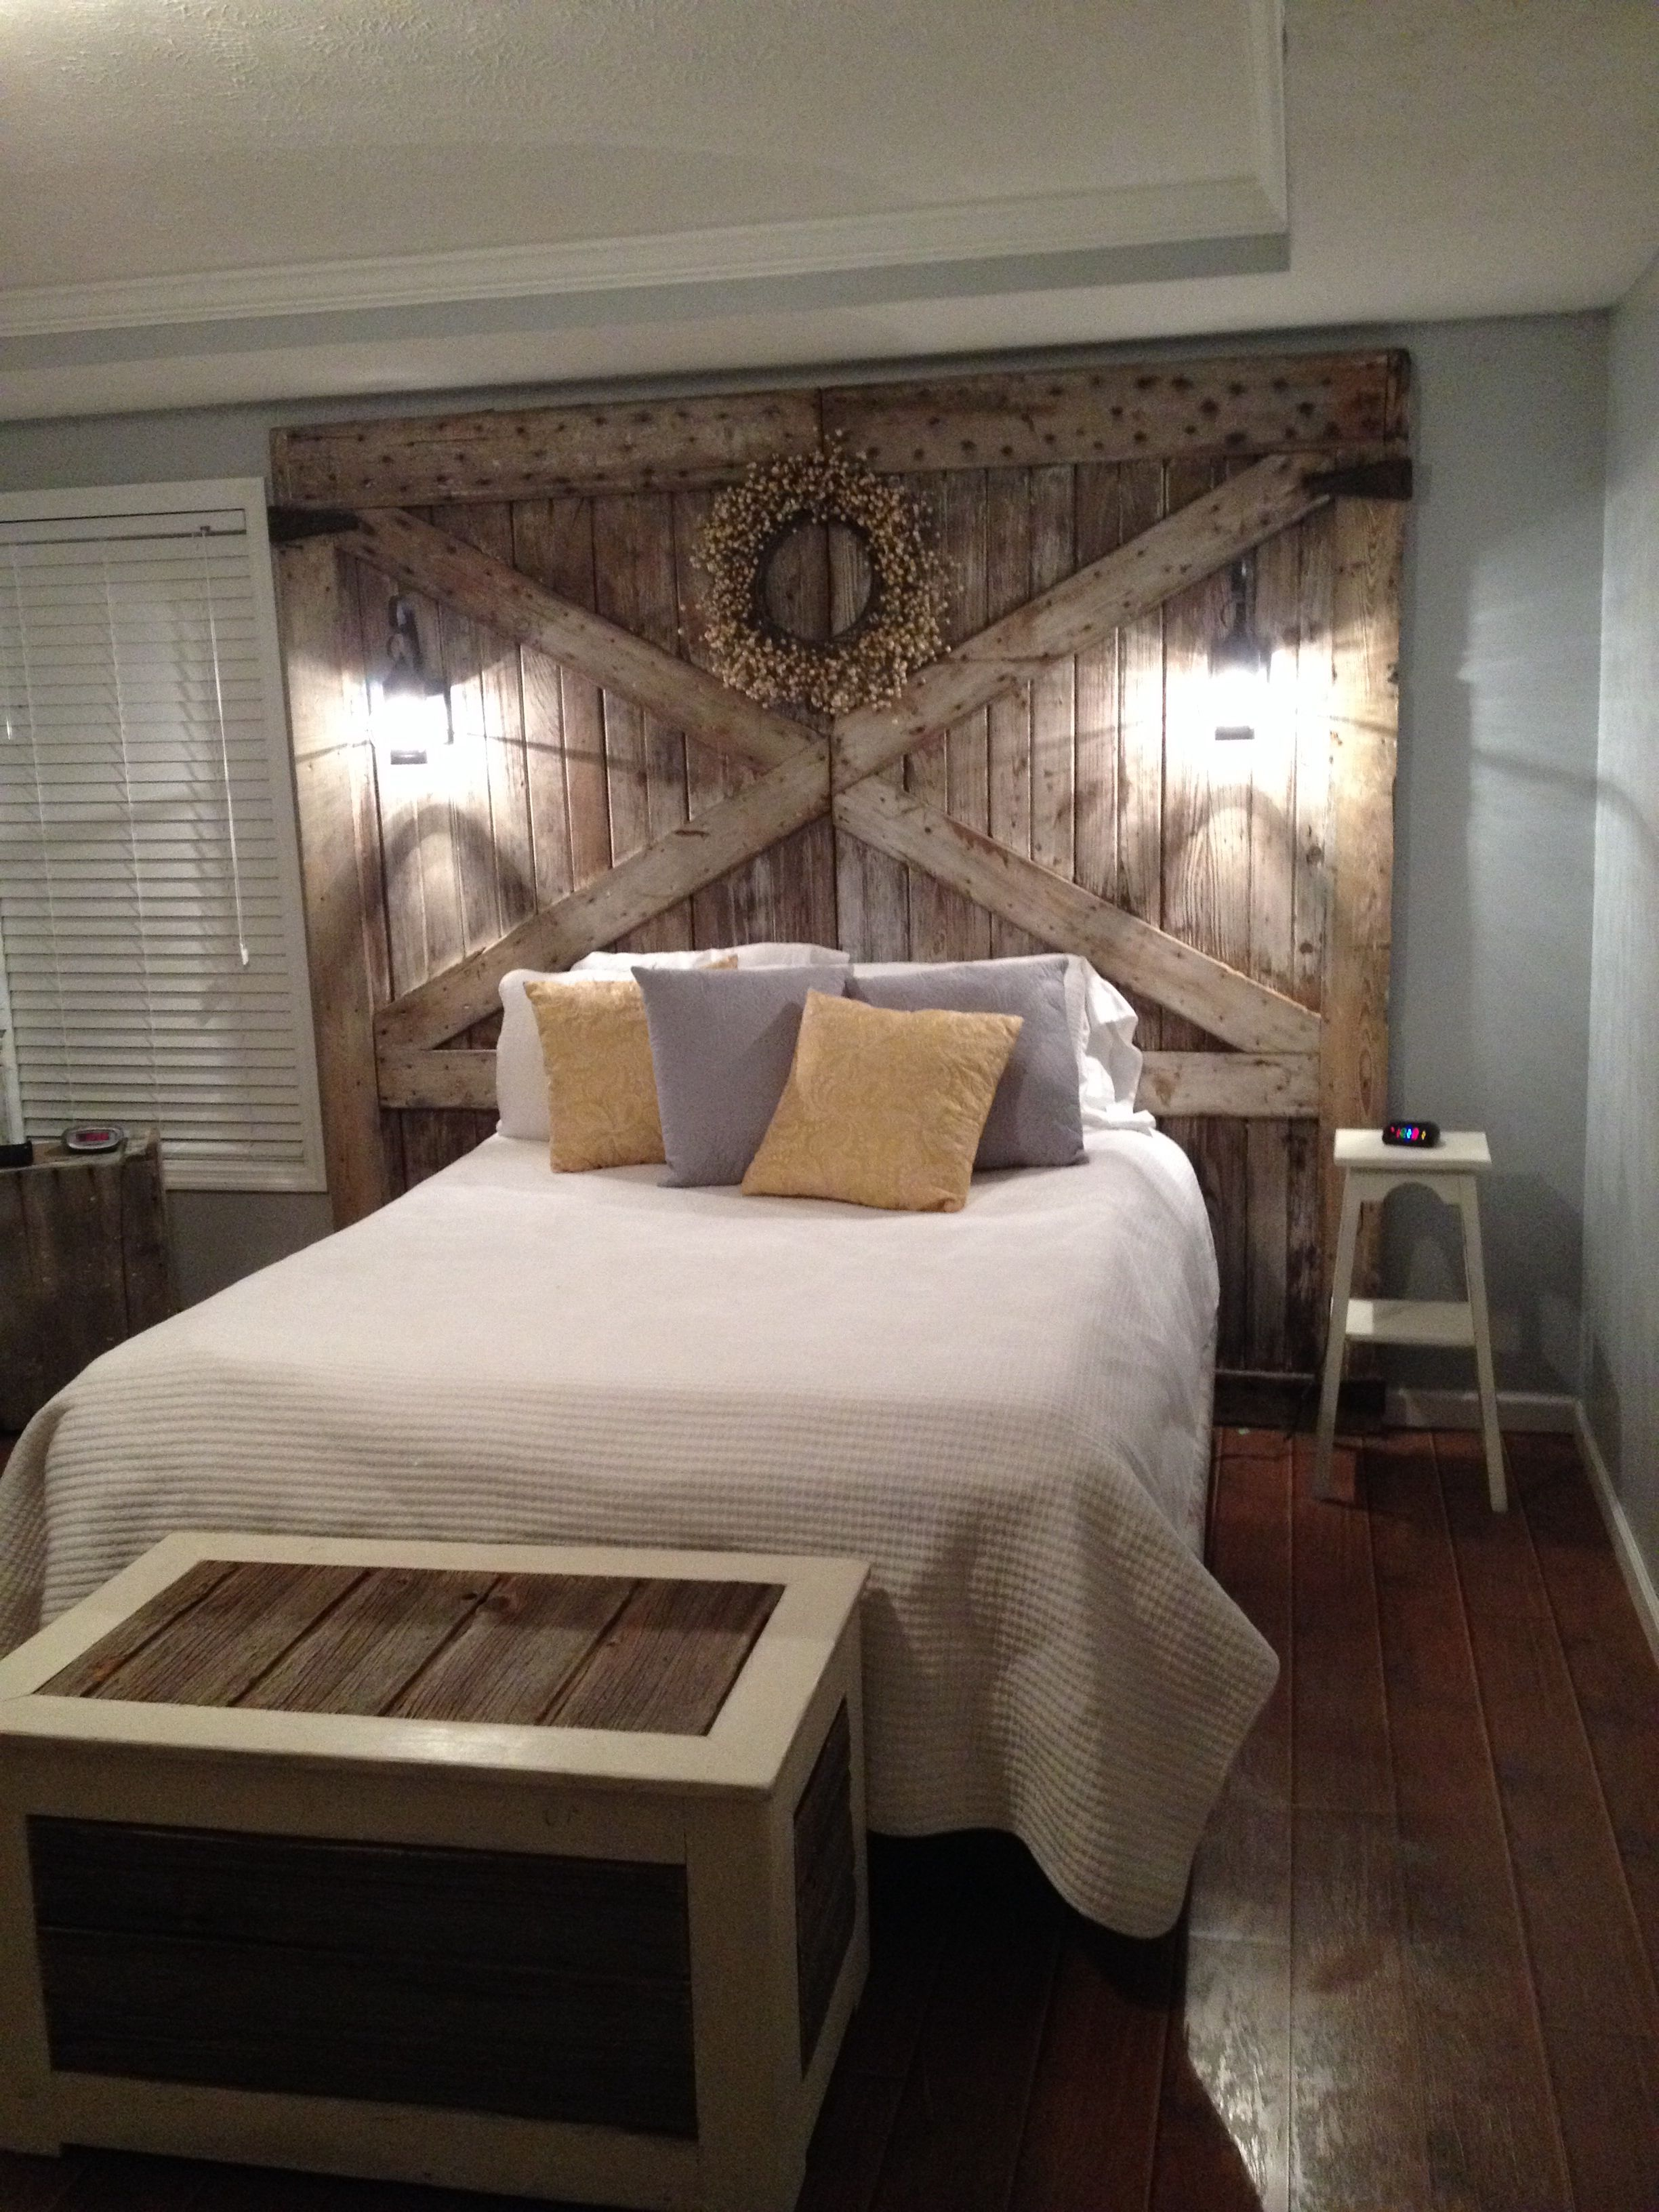 Barn Wood Headboard With Lights Farmhouse Master Bedroom